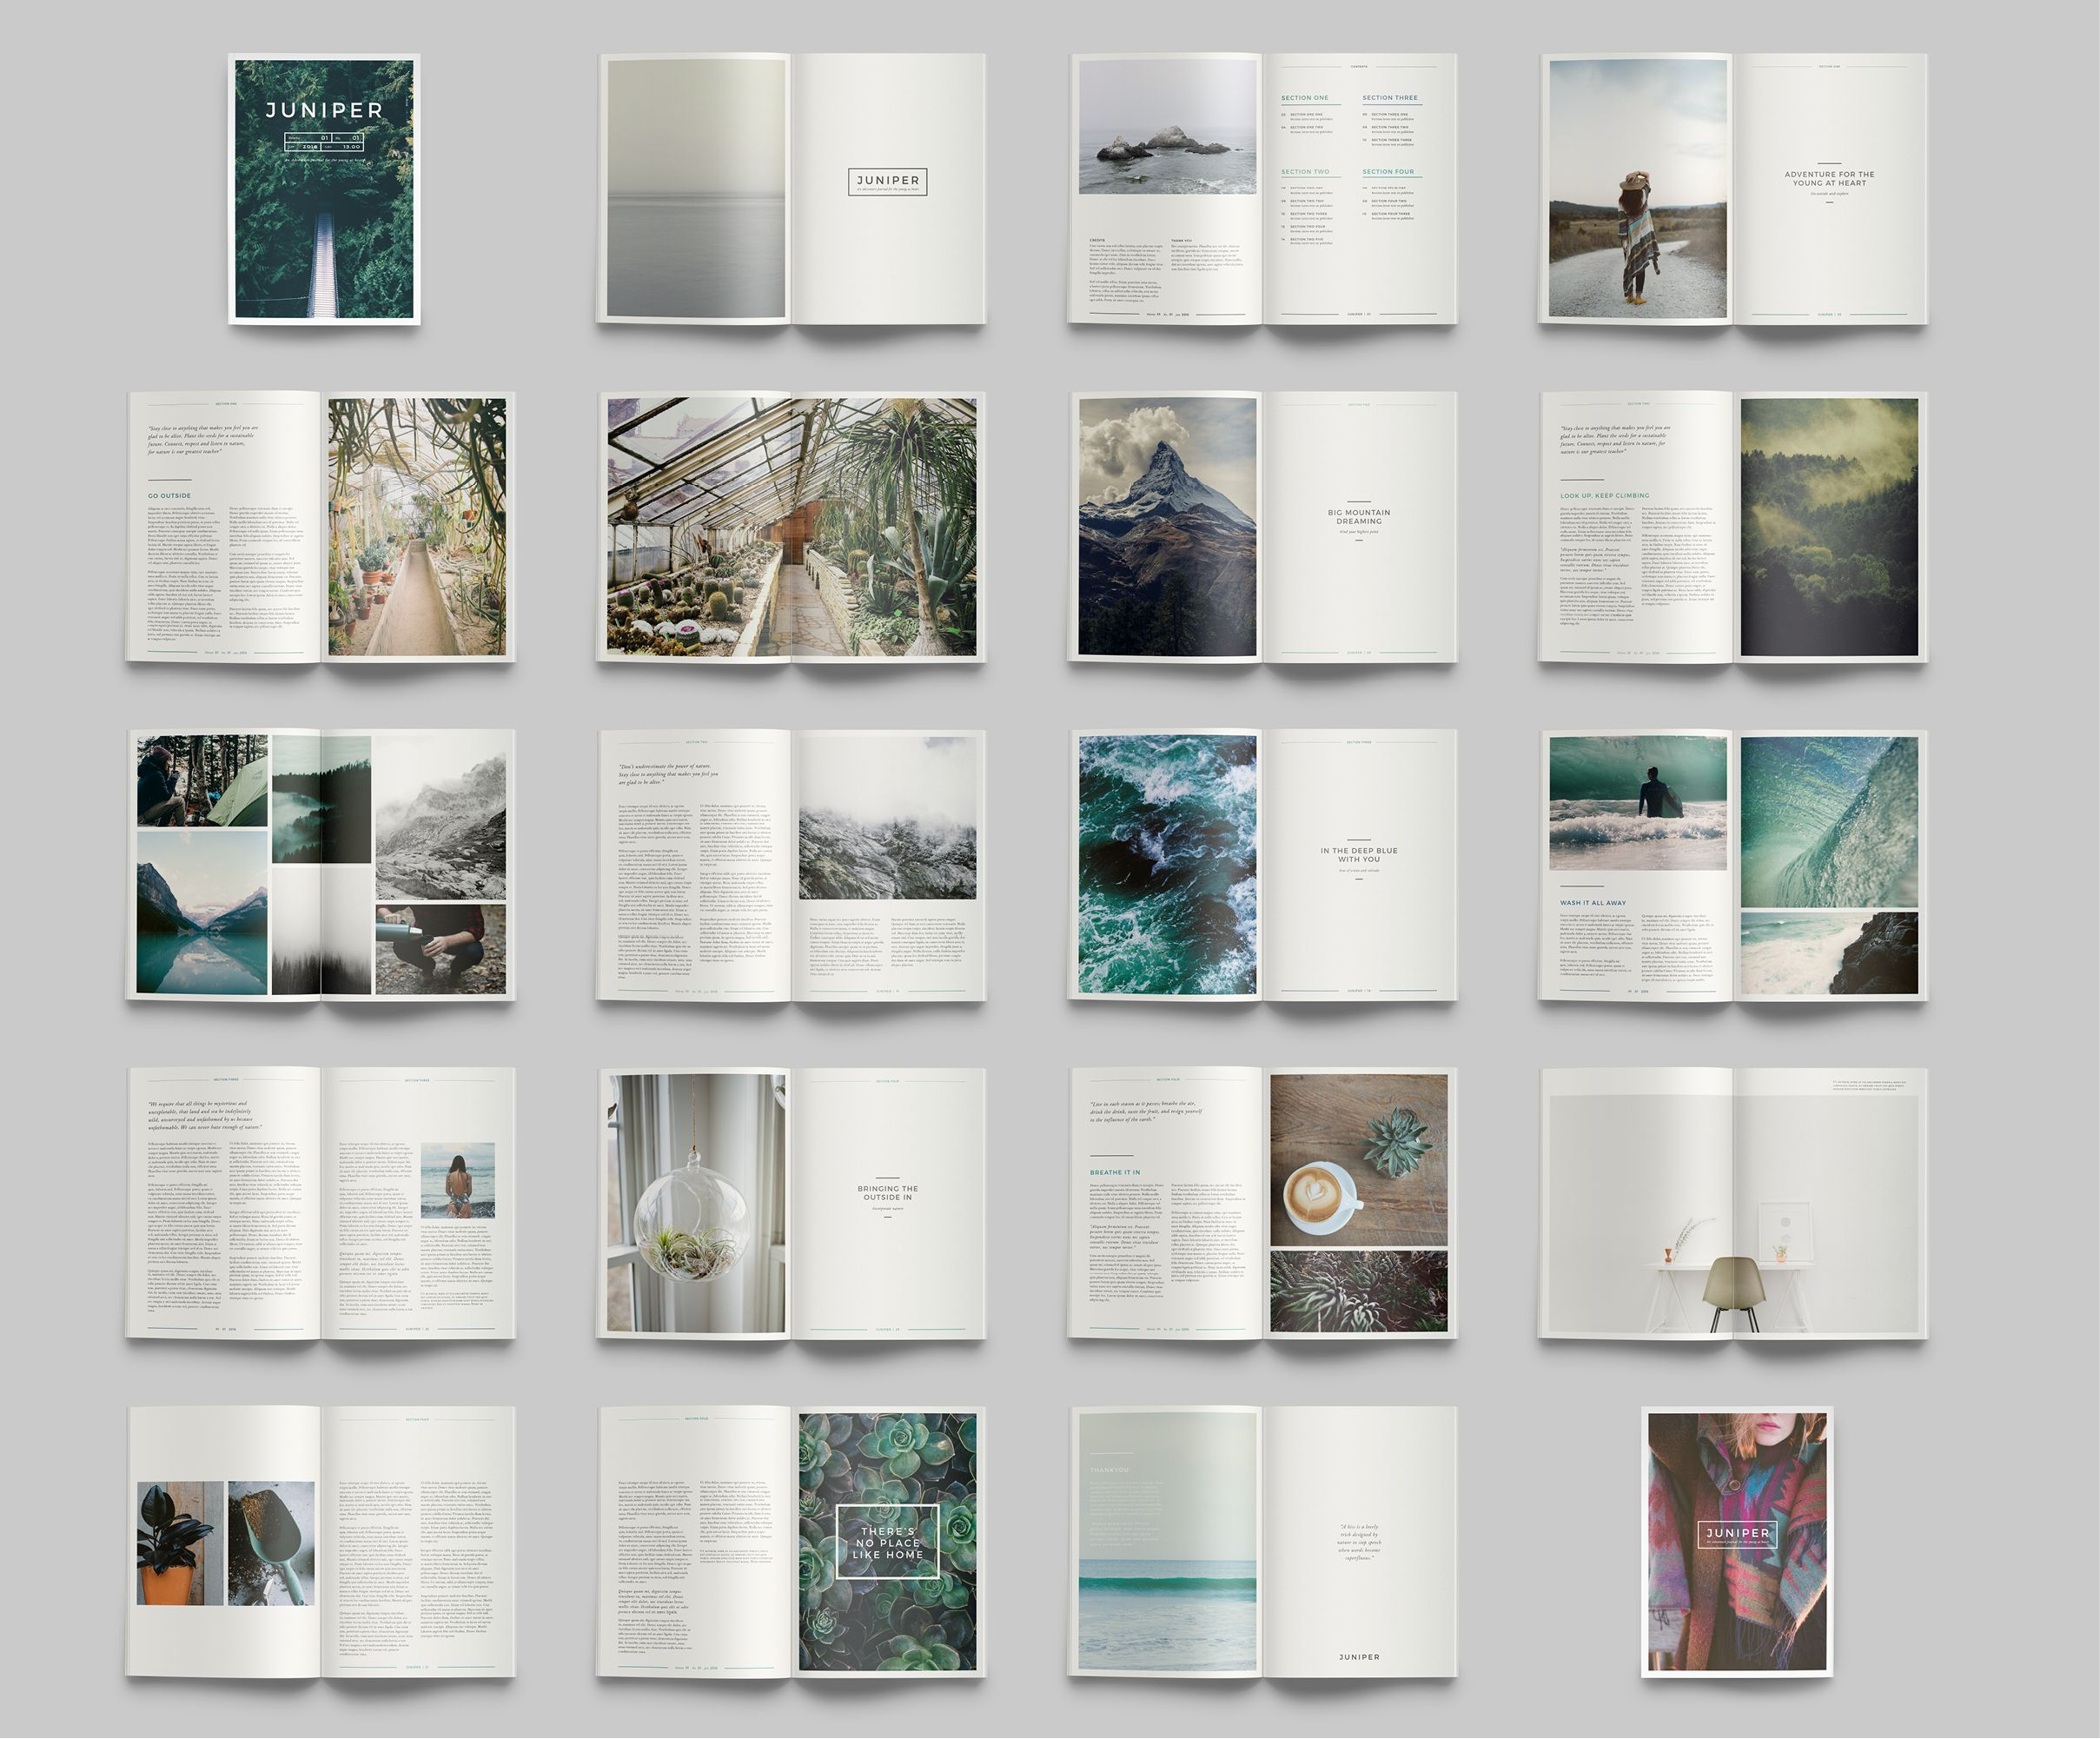 J U N I P E R Magazine Portfolio By 462 Collective On Creativemarket